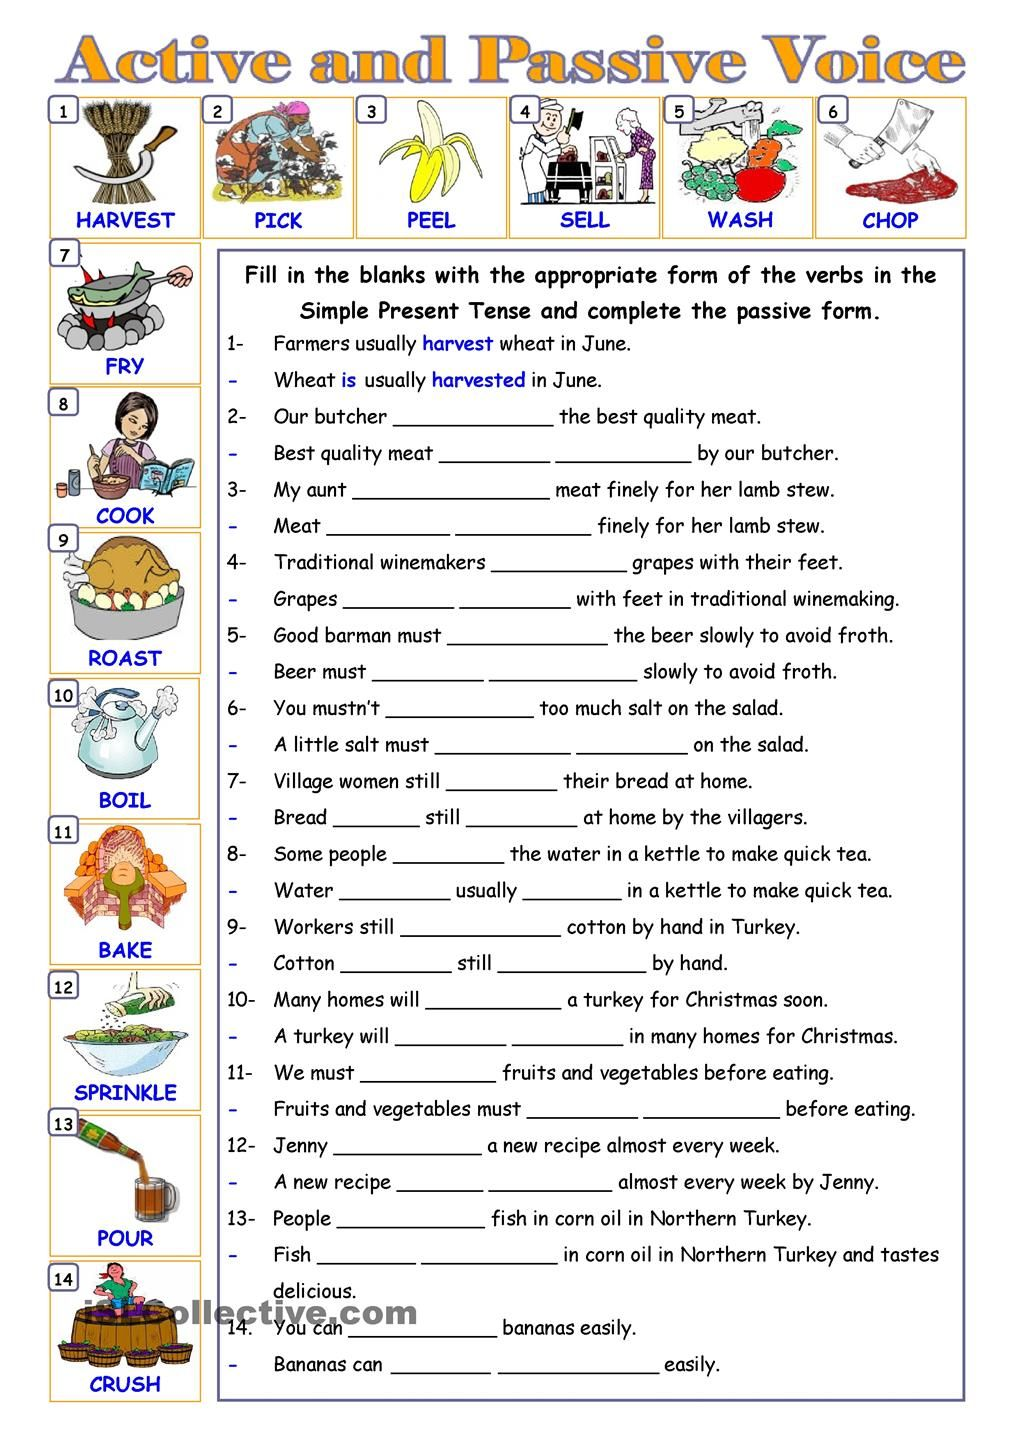 Worksheets Active Vs Passive Voice Worksheet passive voice education pinterest english worksheets and gap fill re write exercise for active in the simple present tense or g